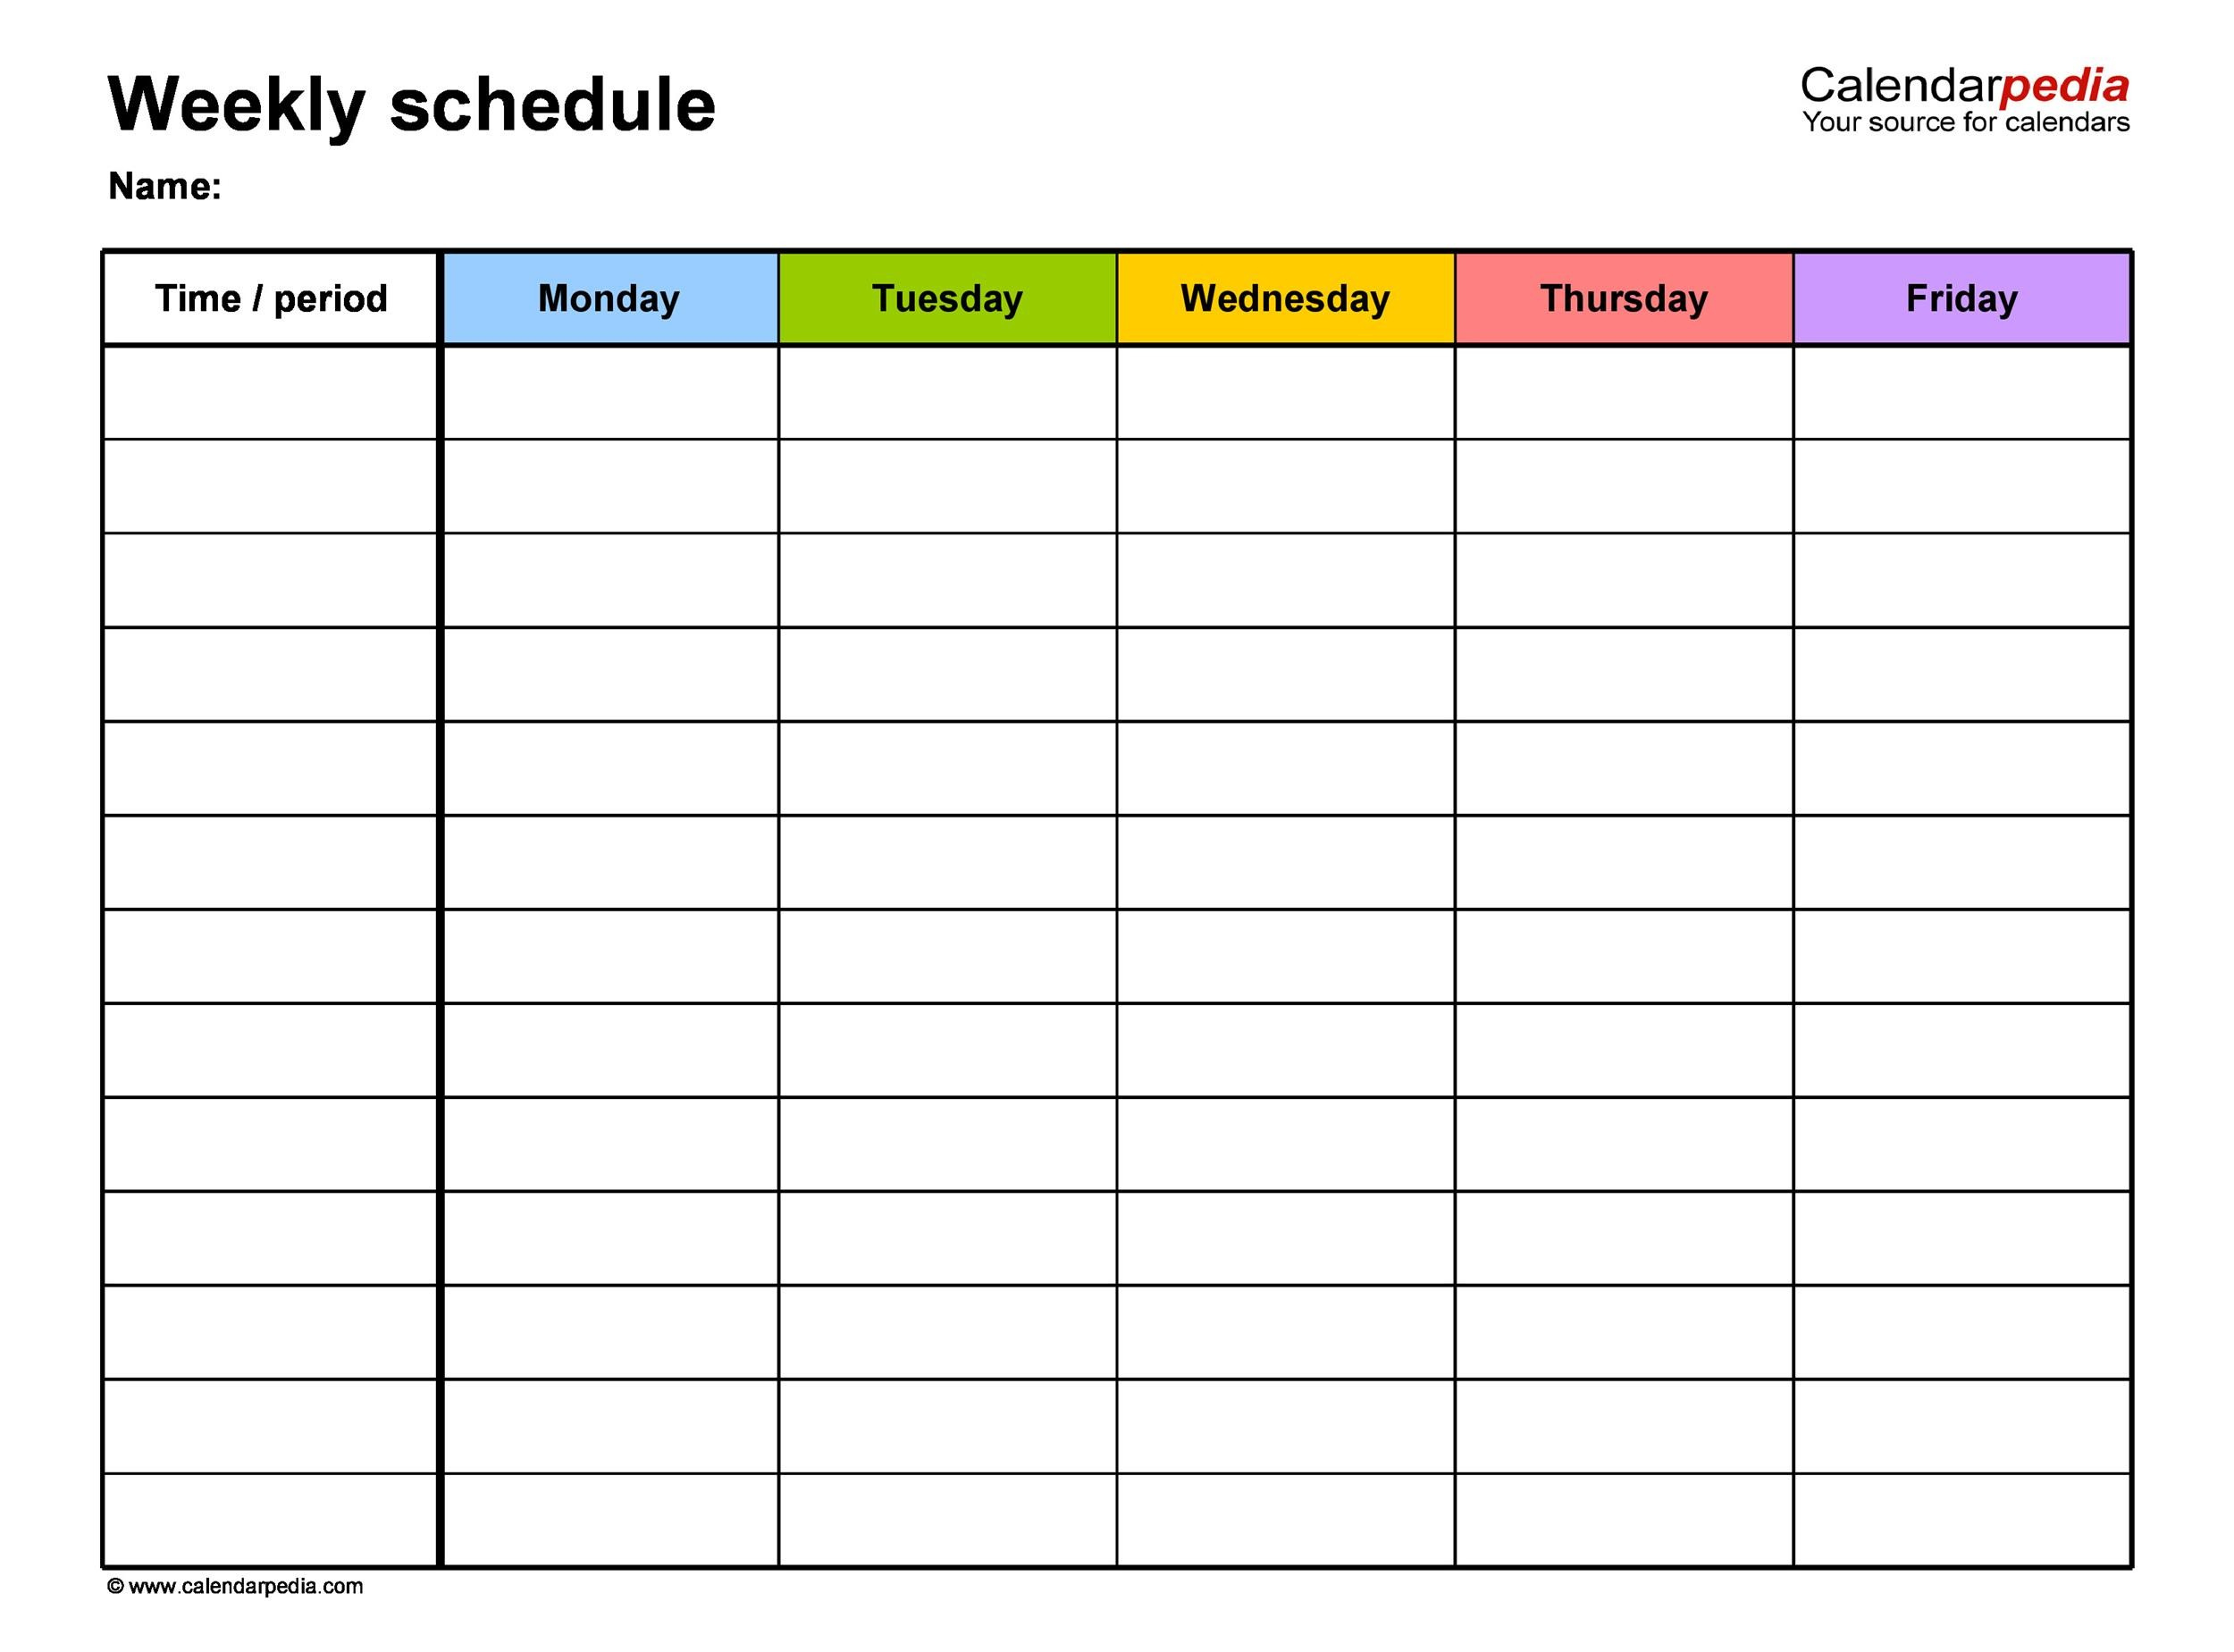 a work schedule template  17 Perfect Daily Work Schedule Templates - Template Lab - a work schedule template